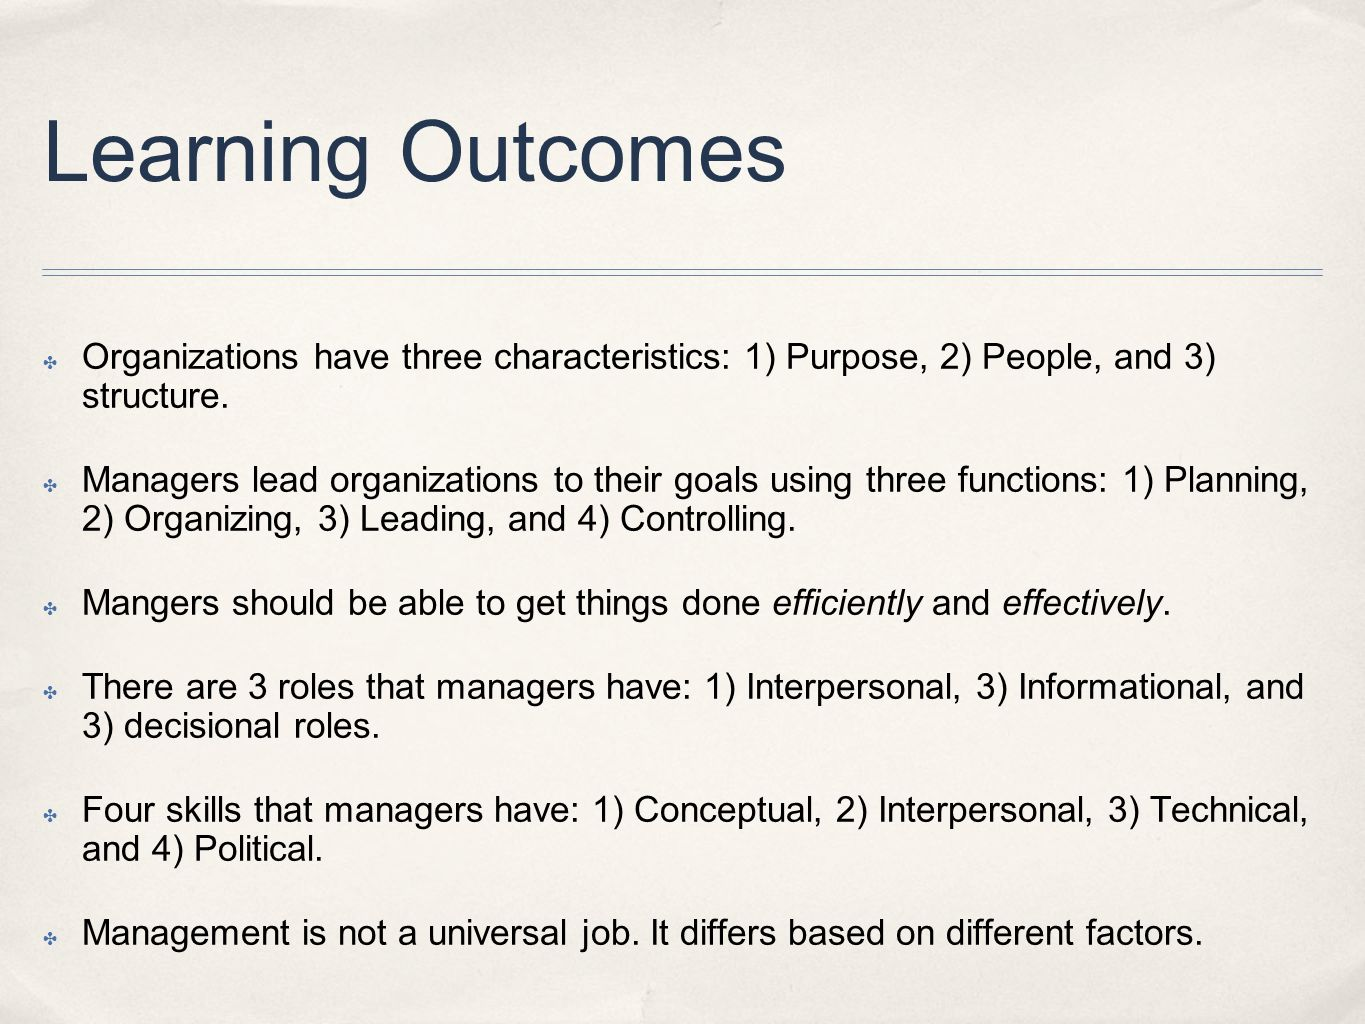 Learning Outcomes Organizations have three characteristics: 1) Purpose, 2) People, and 3) structure.